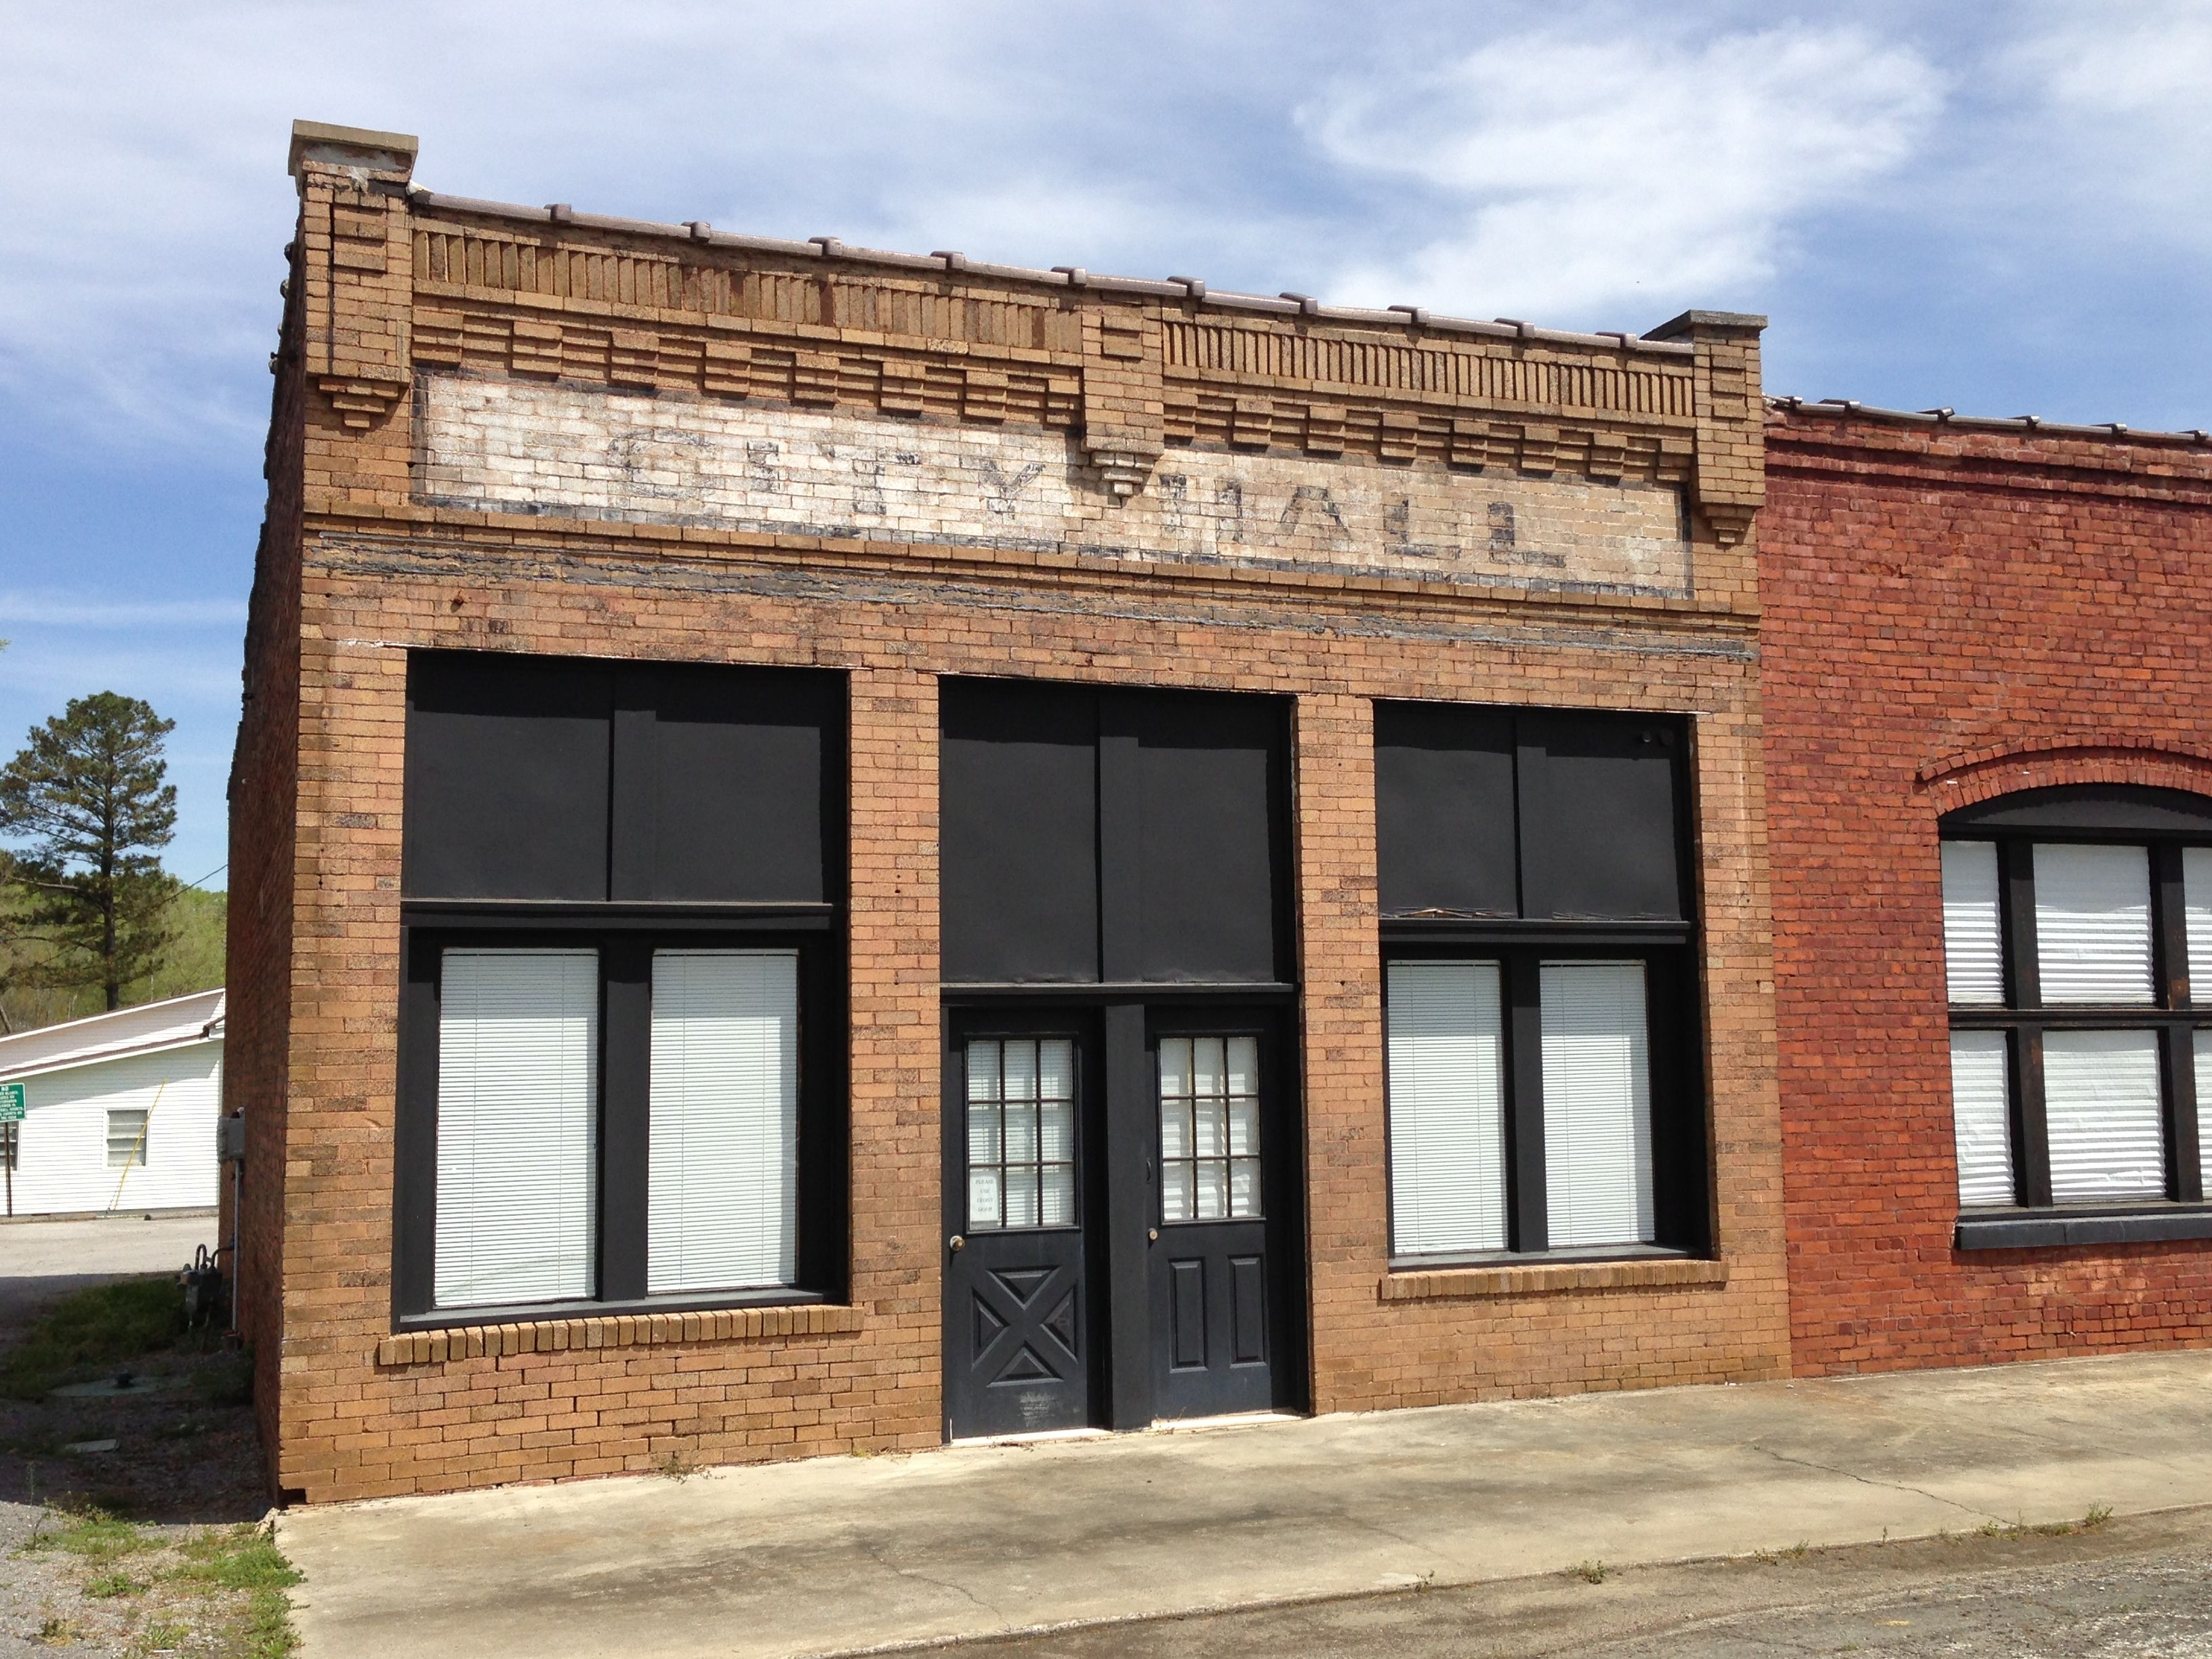 Alabama saint clair county odenville - Find This Pin And More On St Clair County Al